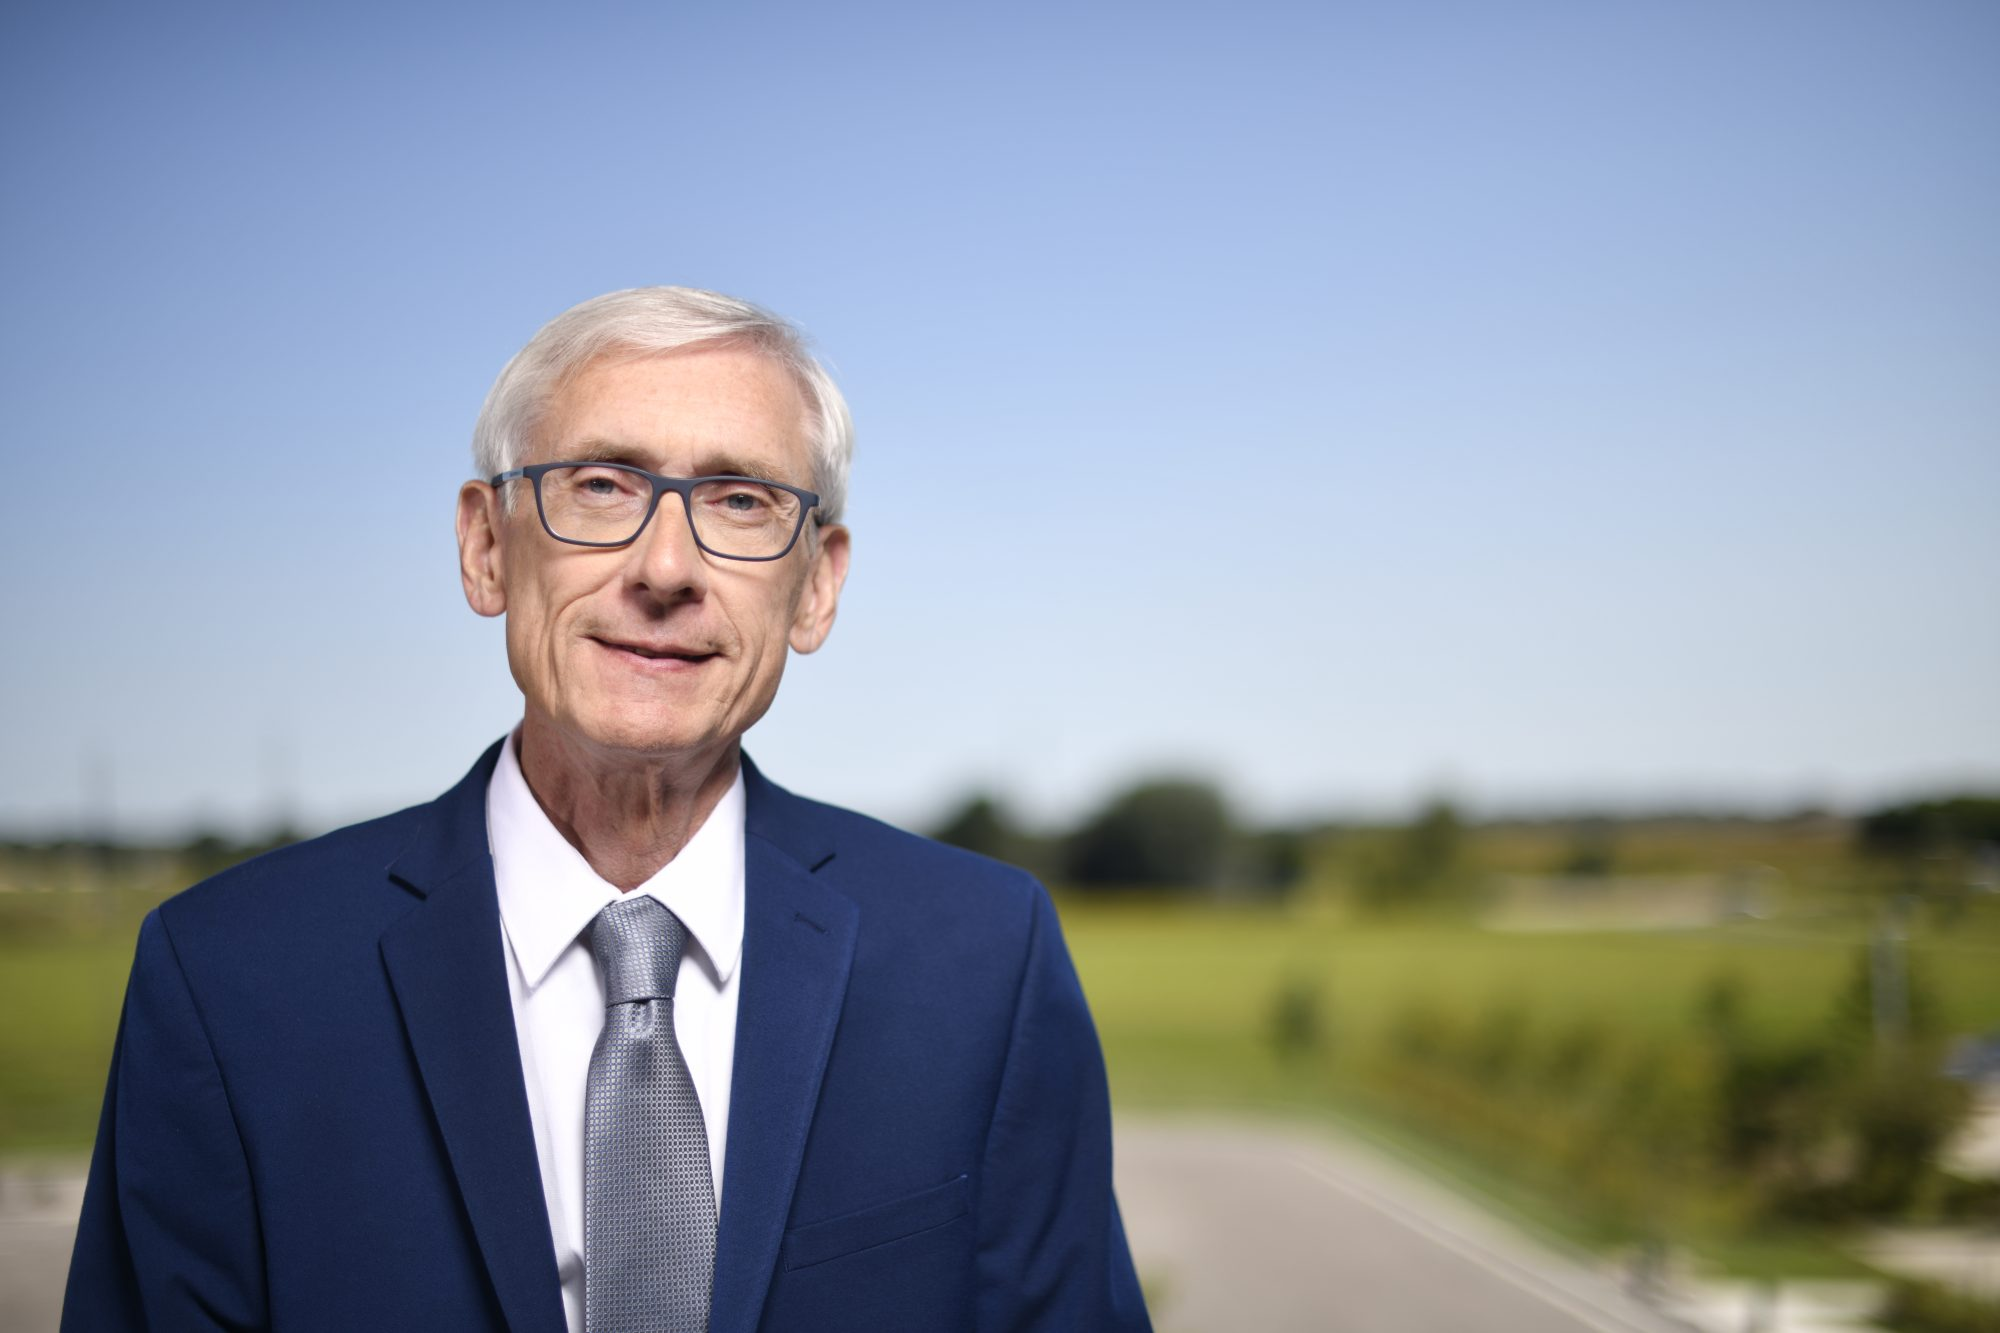 Gov. Evers Signs Bill to Allow Cellular Providers to Upgrade to 5G Technology in Wisconsin